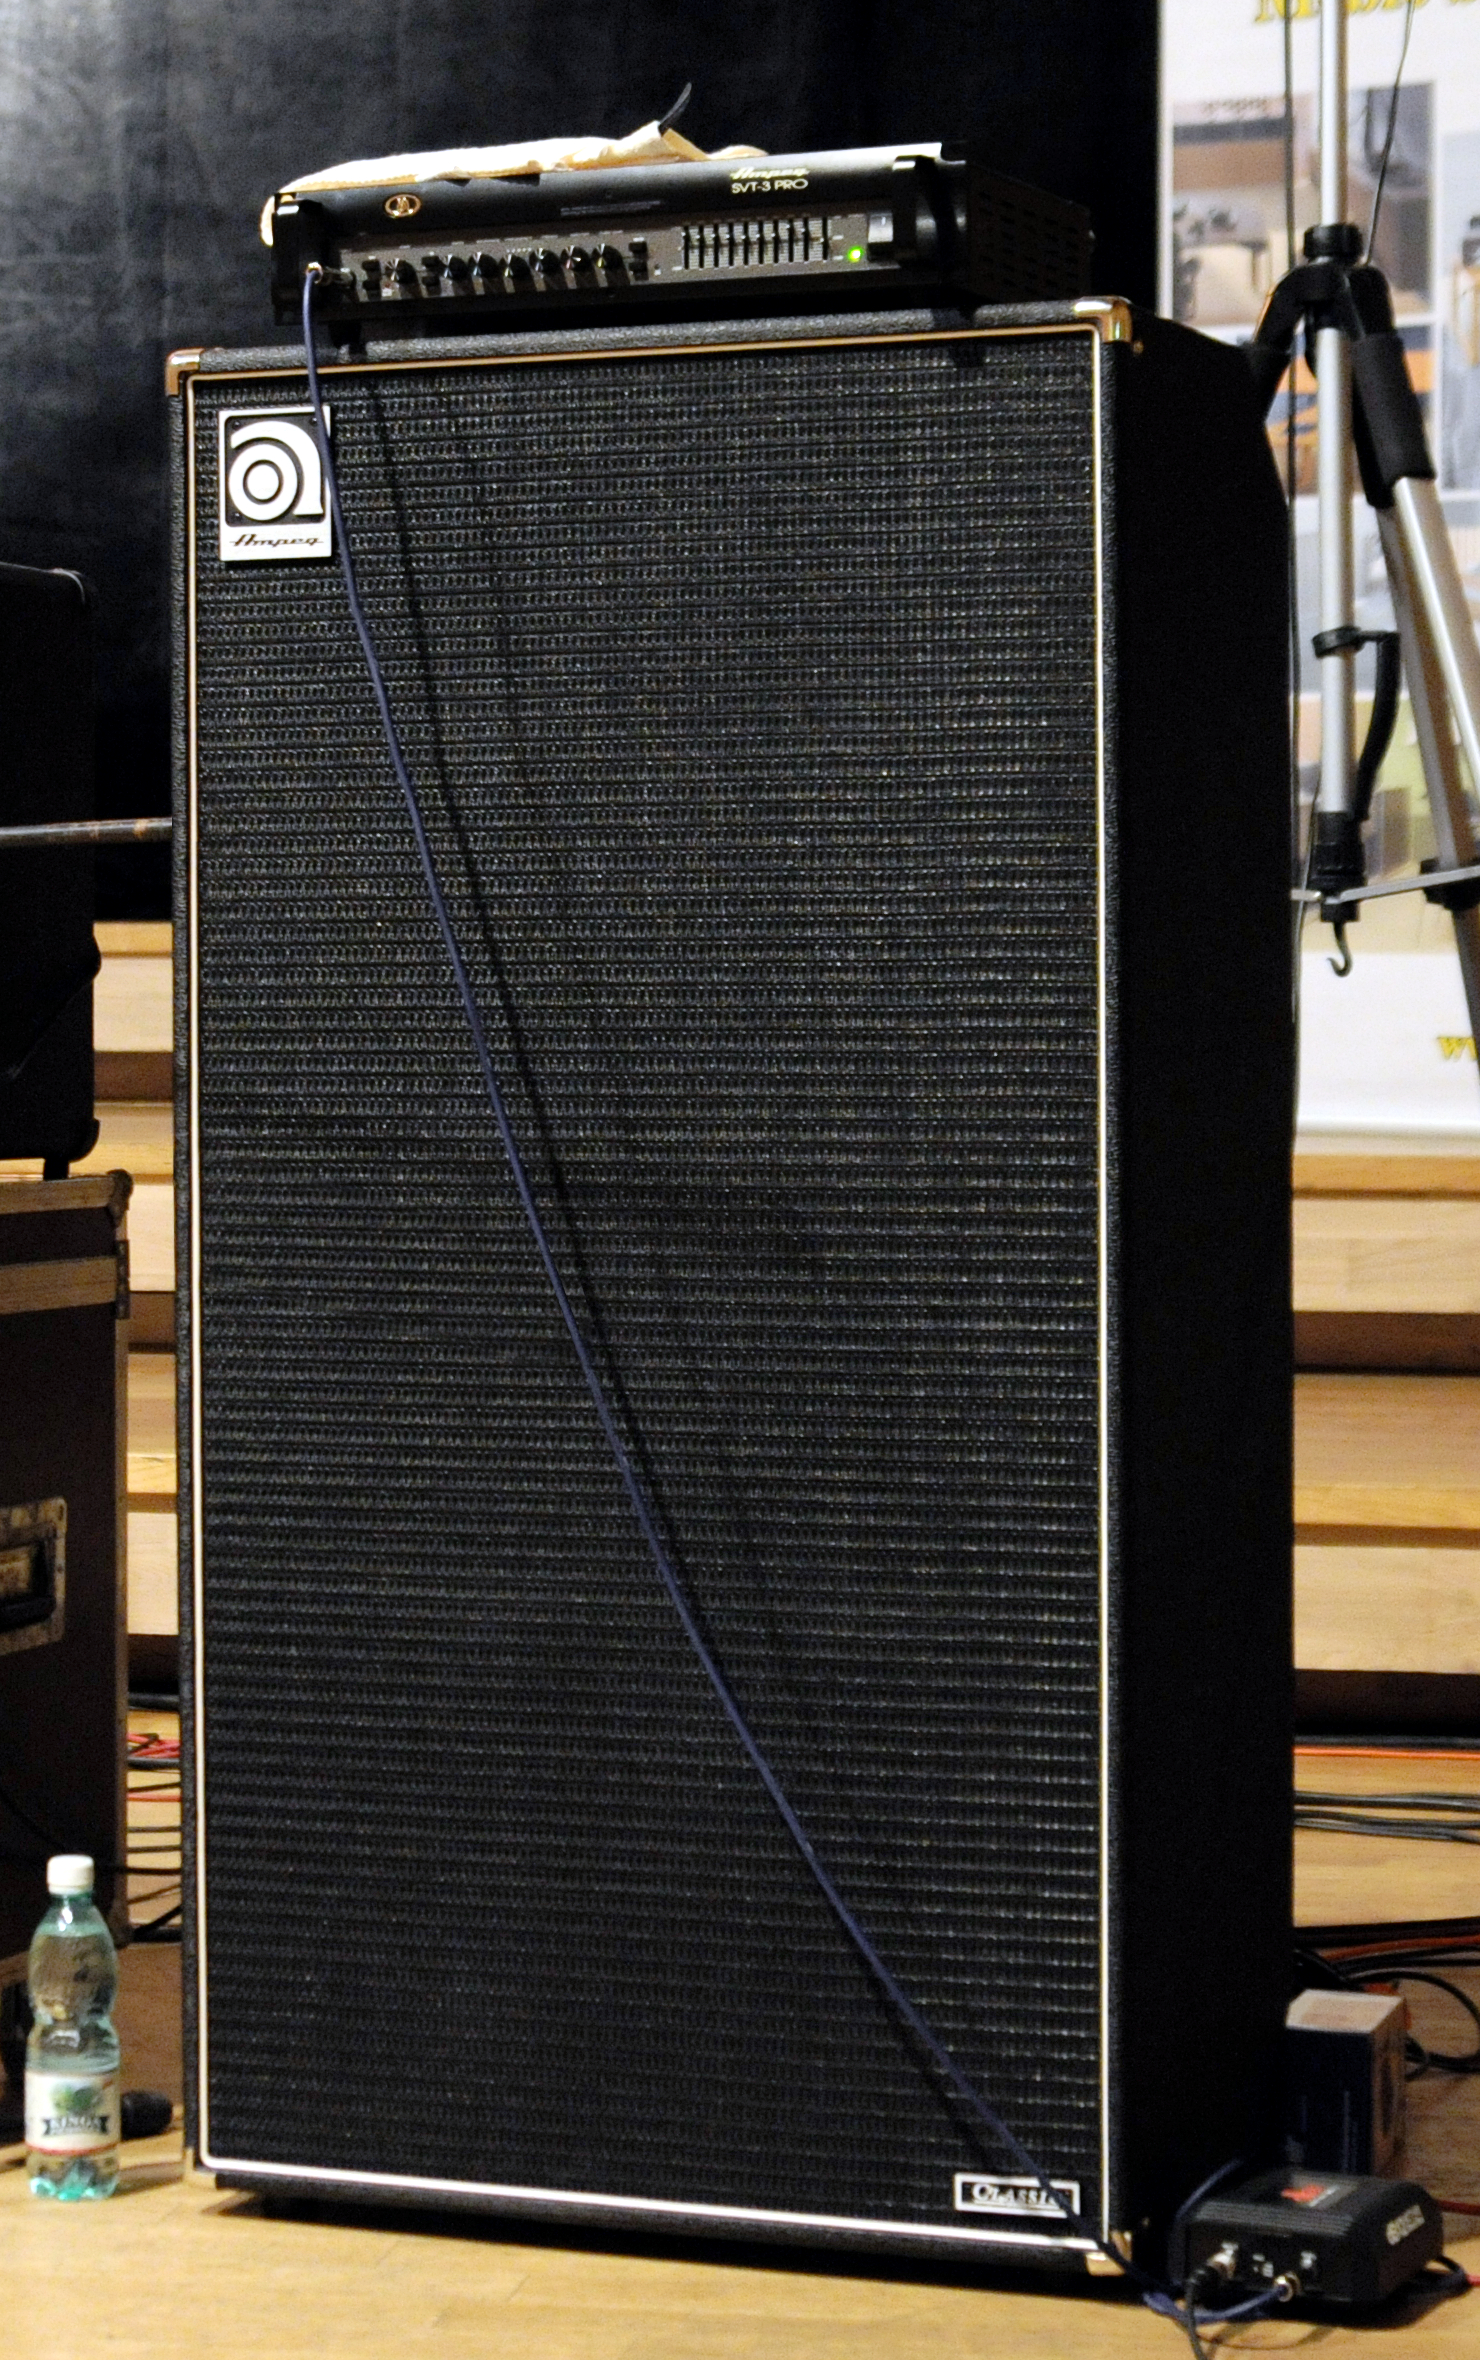 dating ampeg svt Dating ampeg amplifiers especially the high-powered amps such as the svt and v-series, contain lethal voltages even when unplugged and turned off.